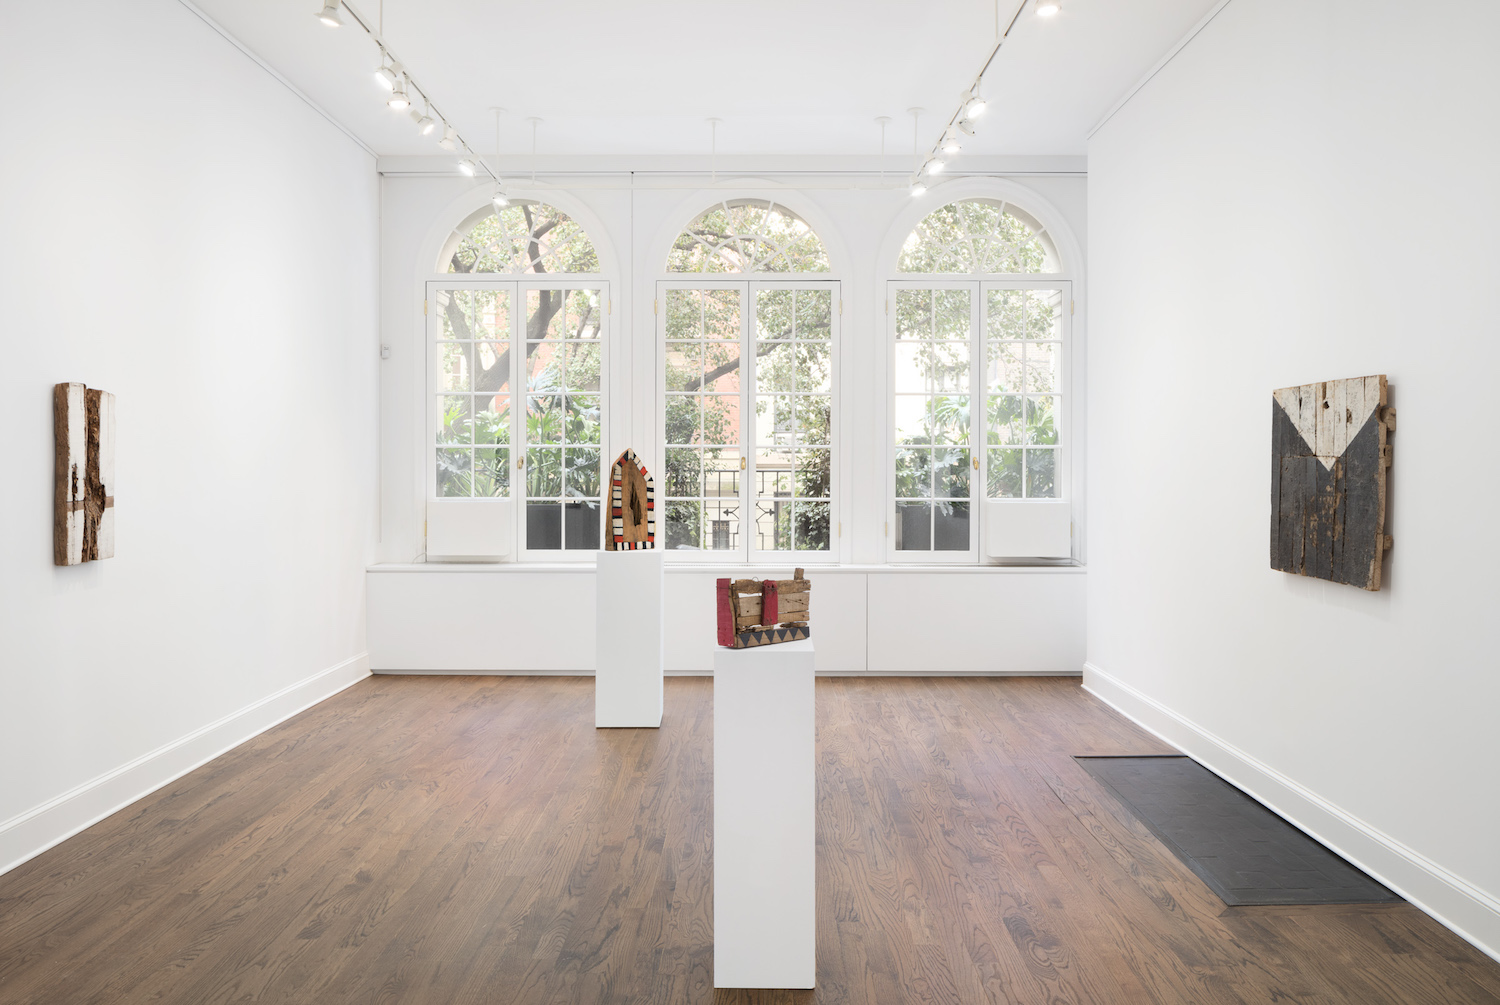 Installation view, Celso Renato at Mendes Wood